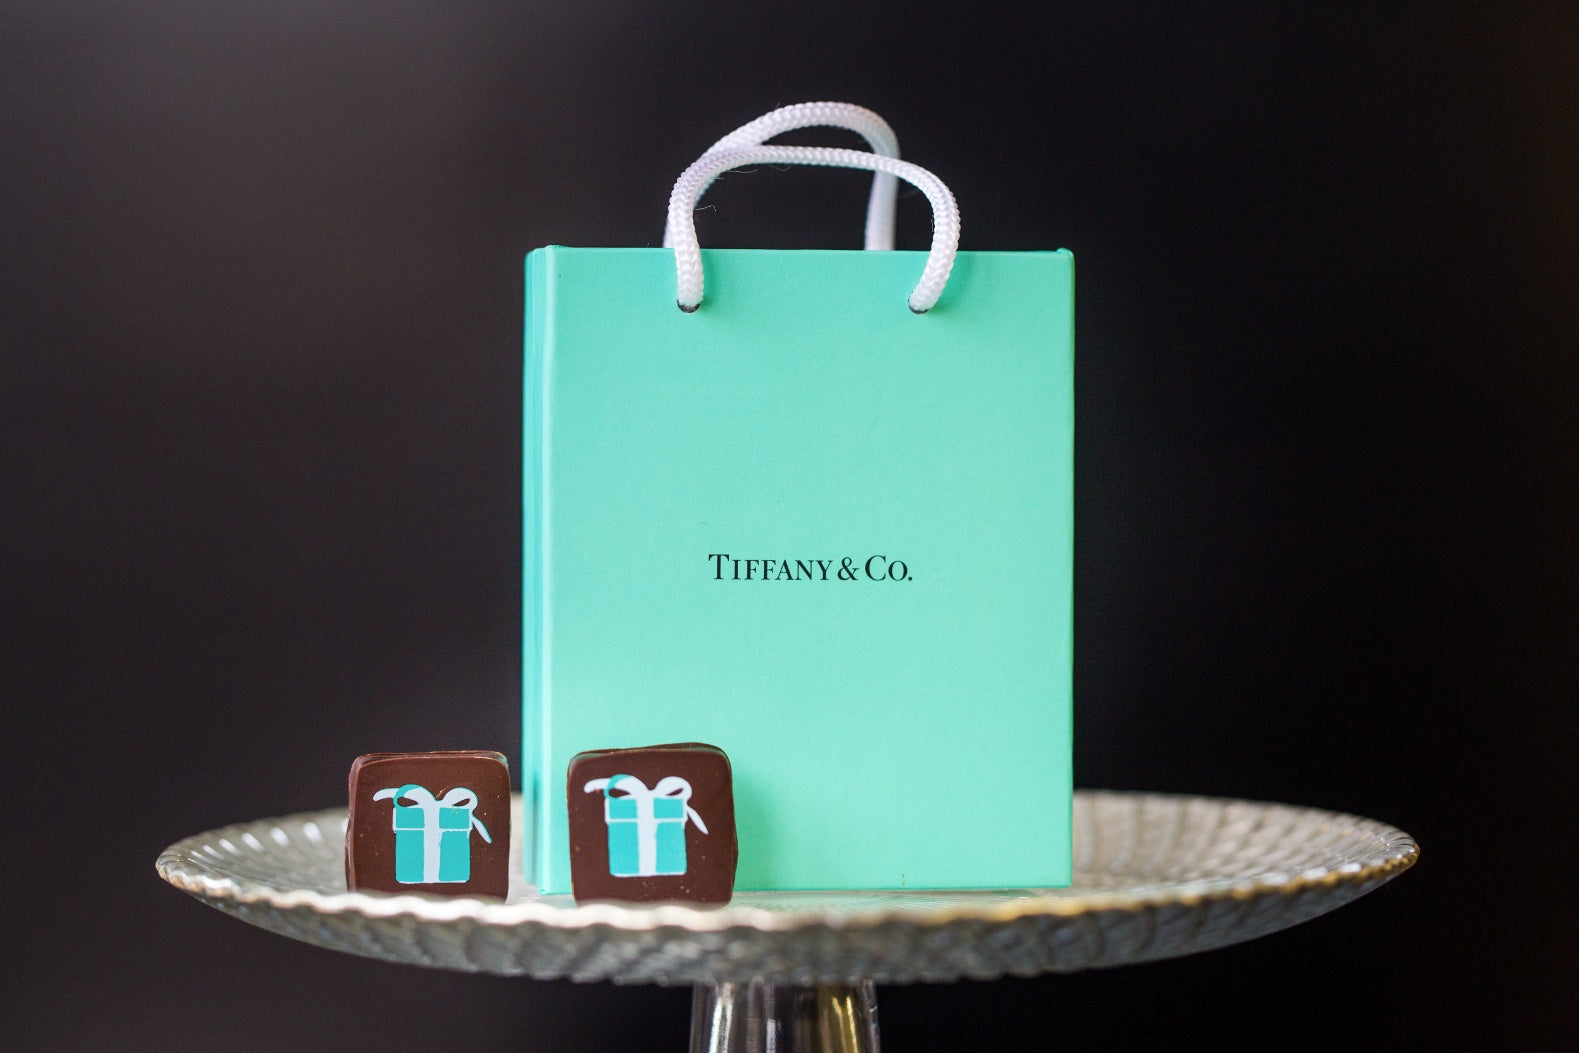 Signature Ganache for Tiffany & Co.